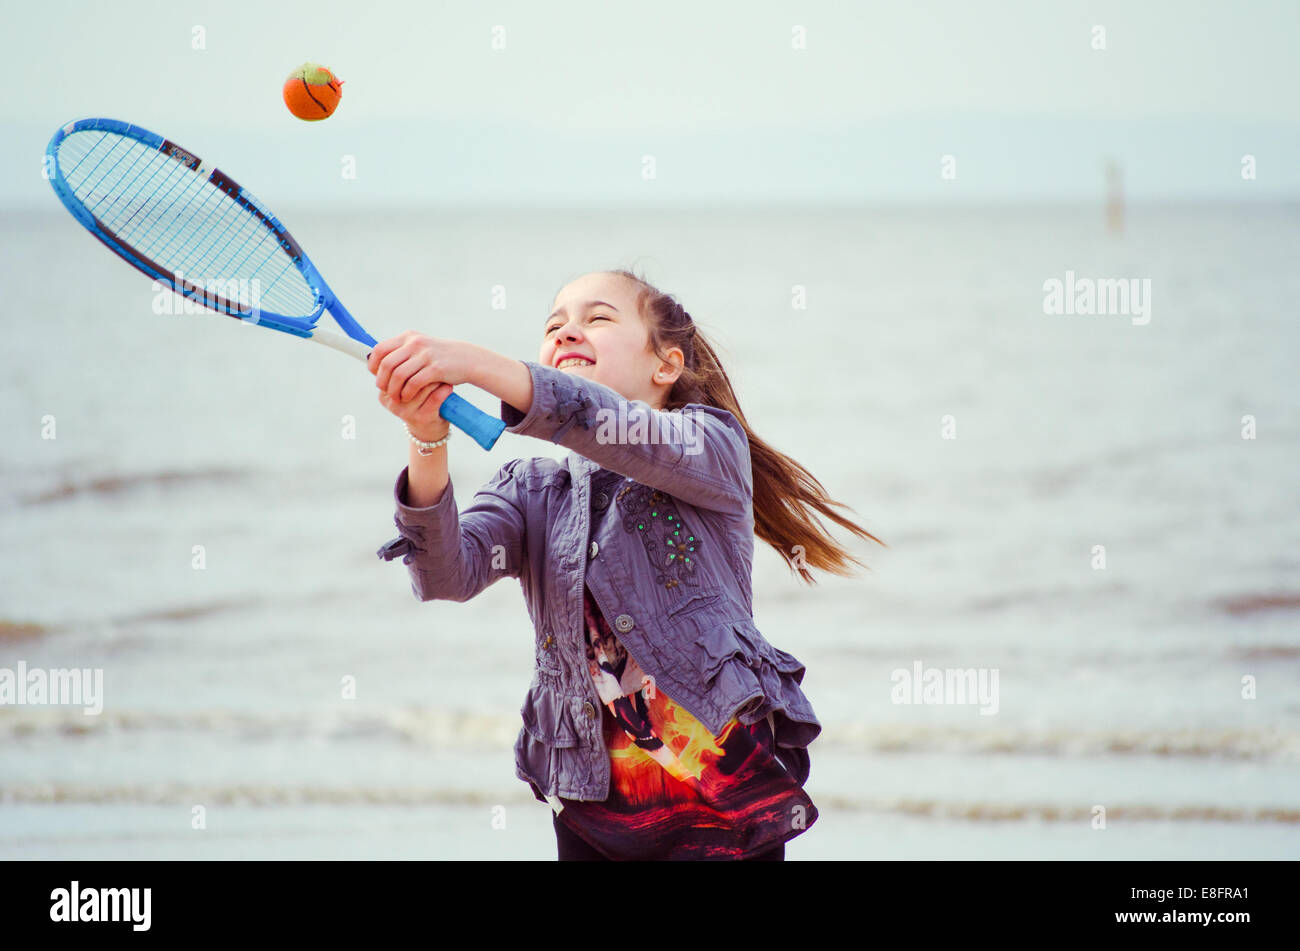 Fille jouant au tennis sur la plage Photo Stock